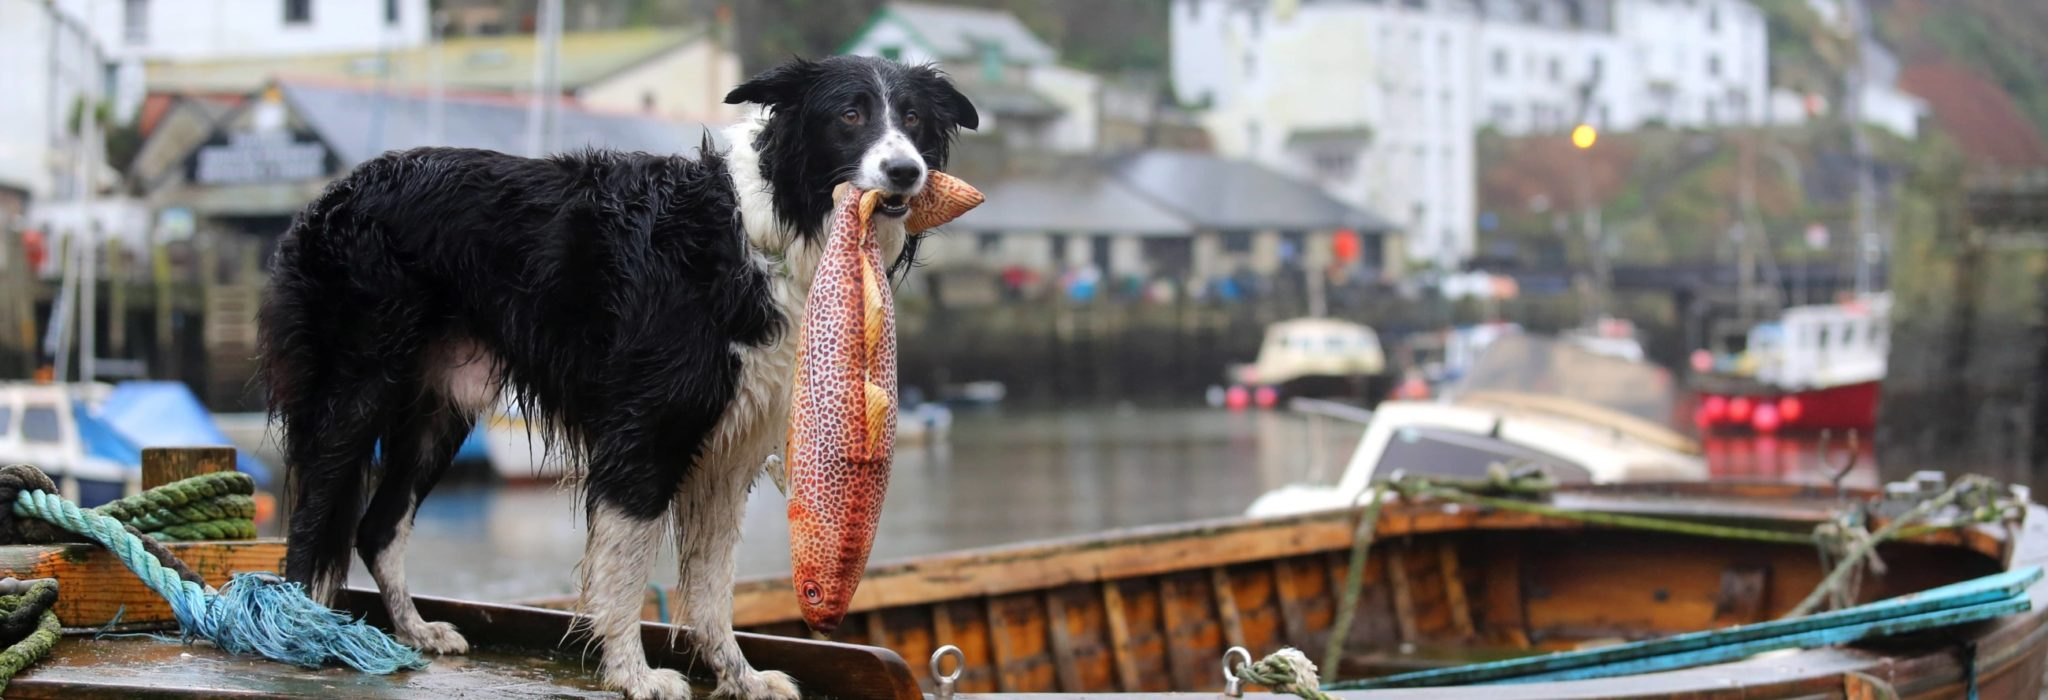 Dog catching a fish on the boats at Polperro Harbour in Cornwall